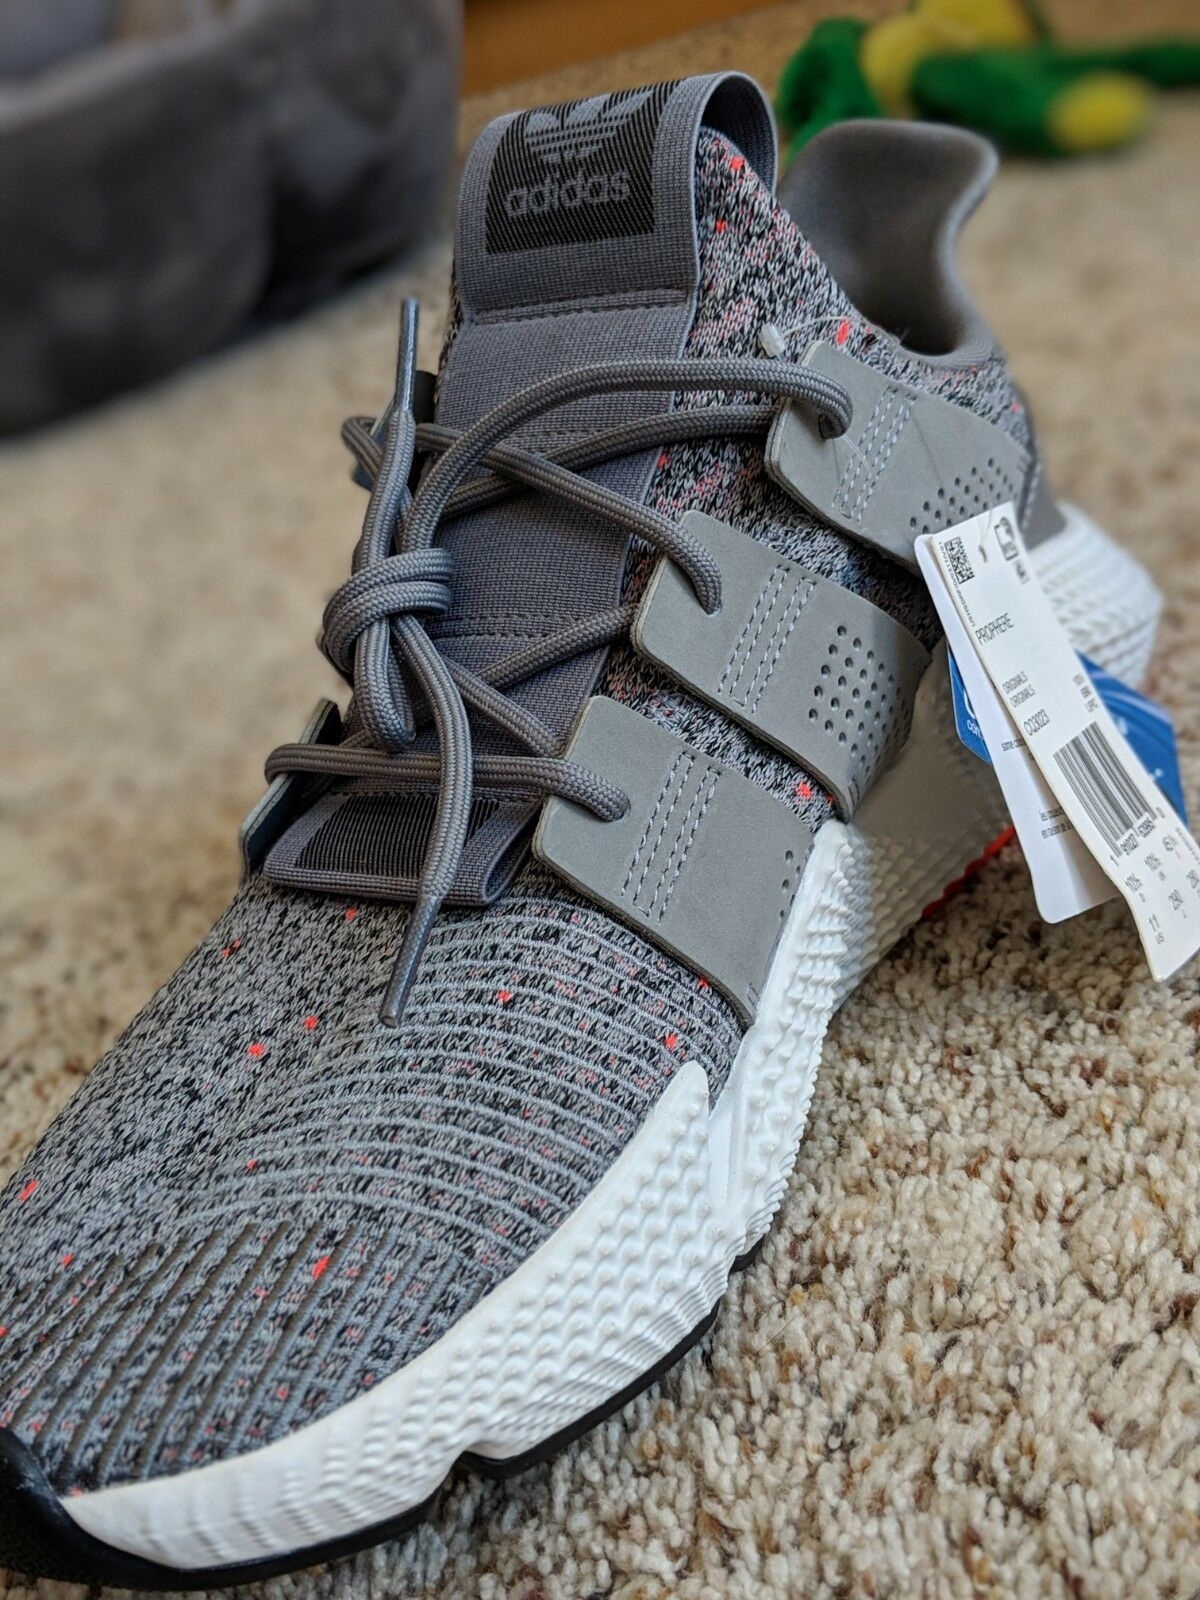 Adidas Prophere Sneakers Casual shoes Trainers Men's - Grey - M11